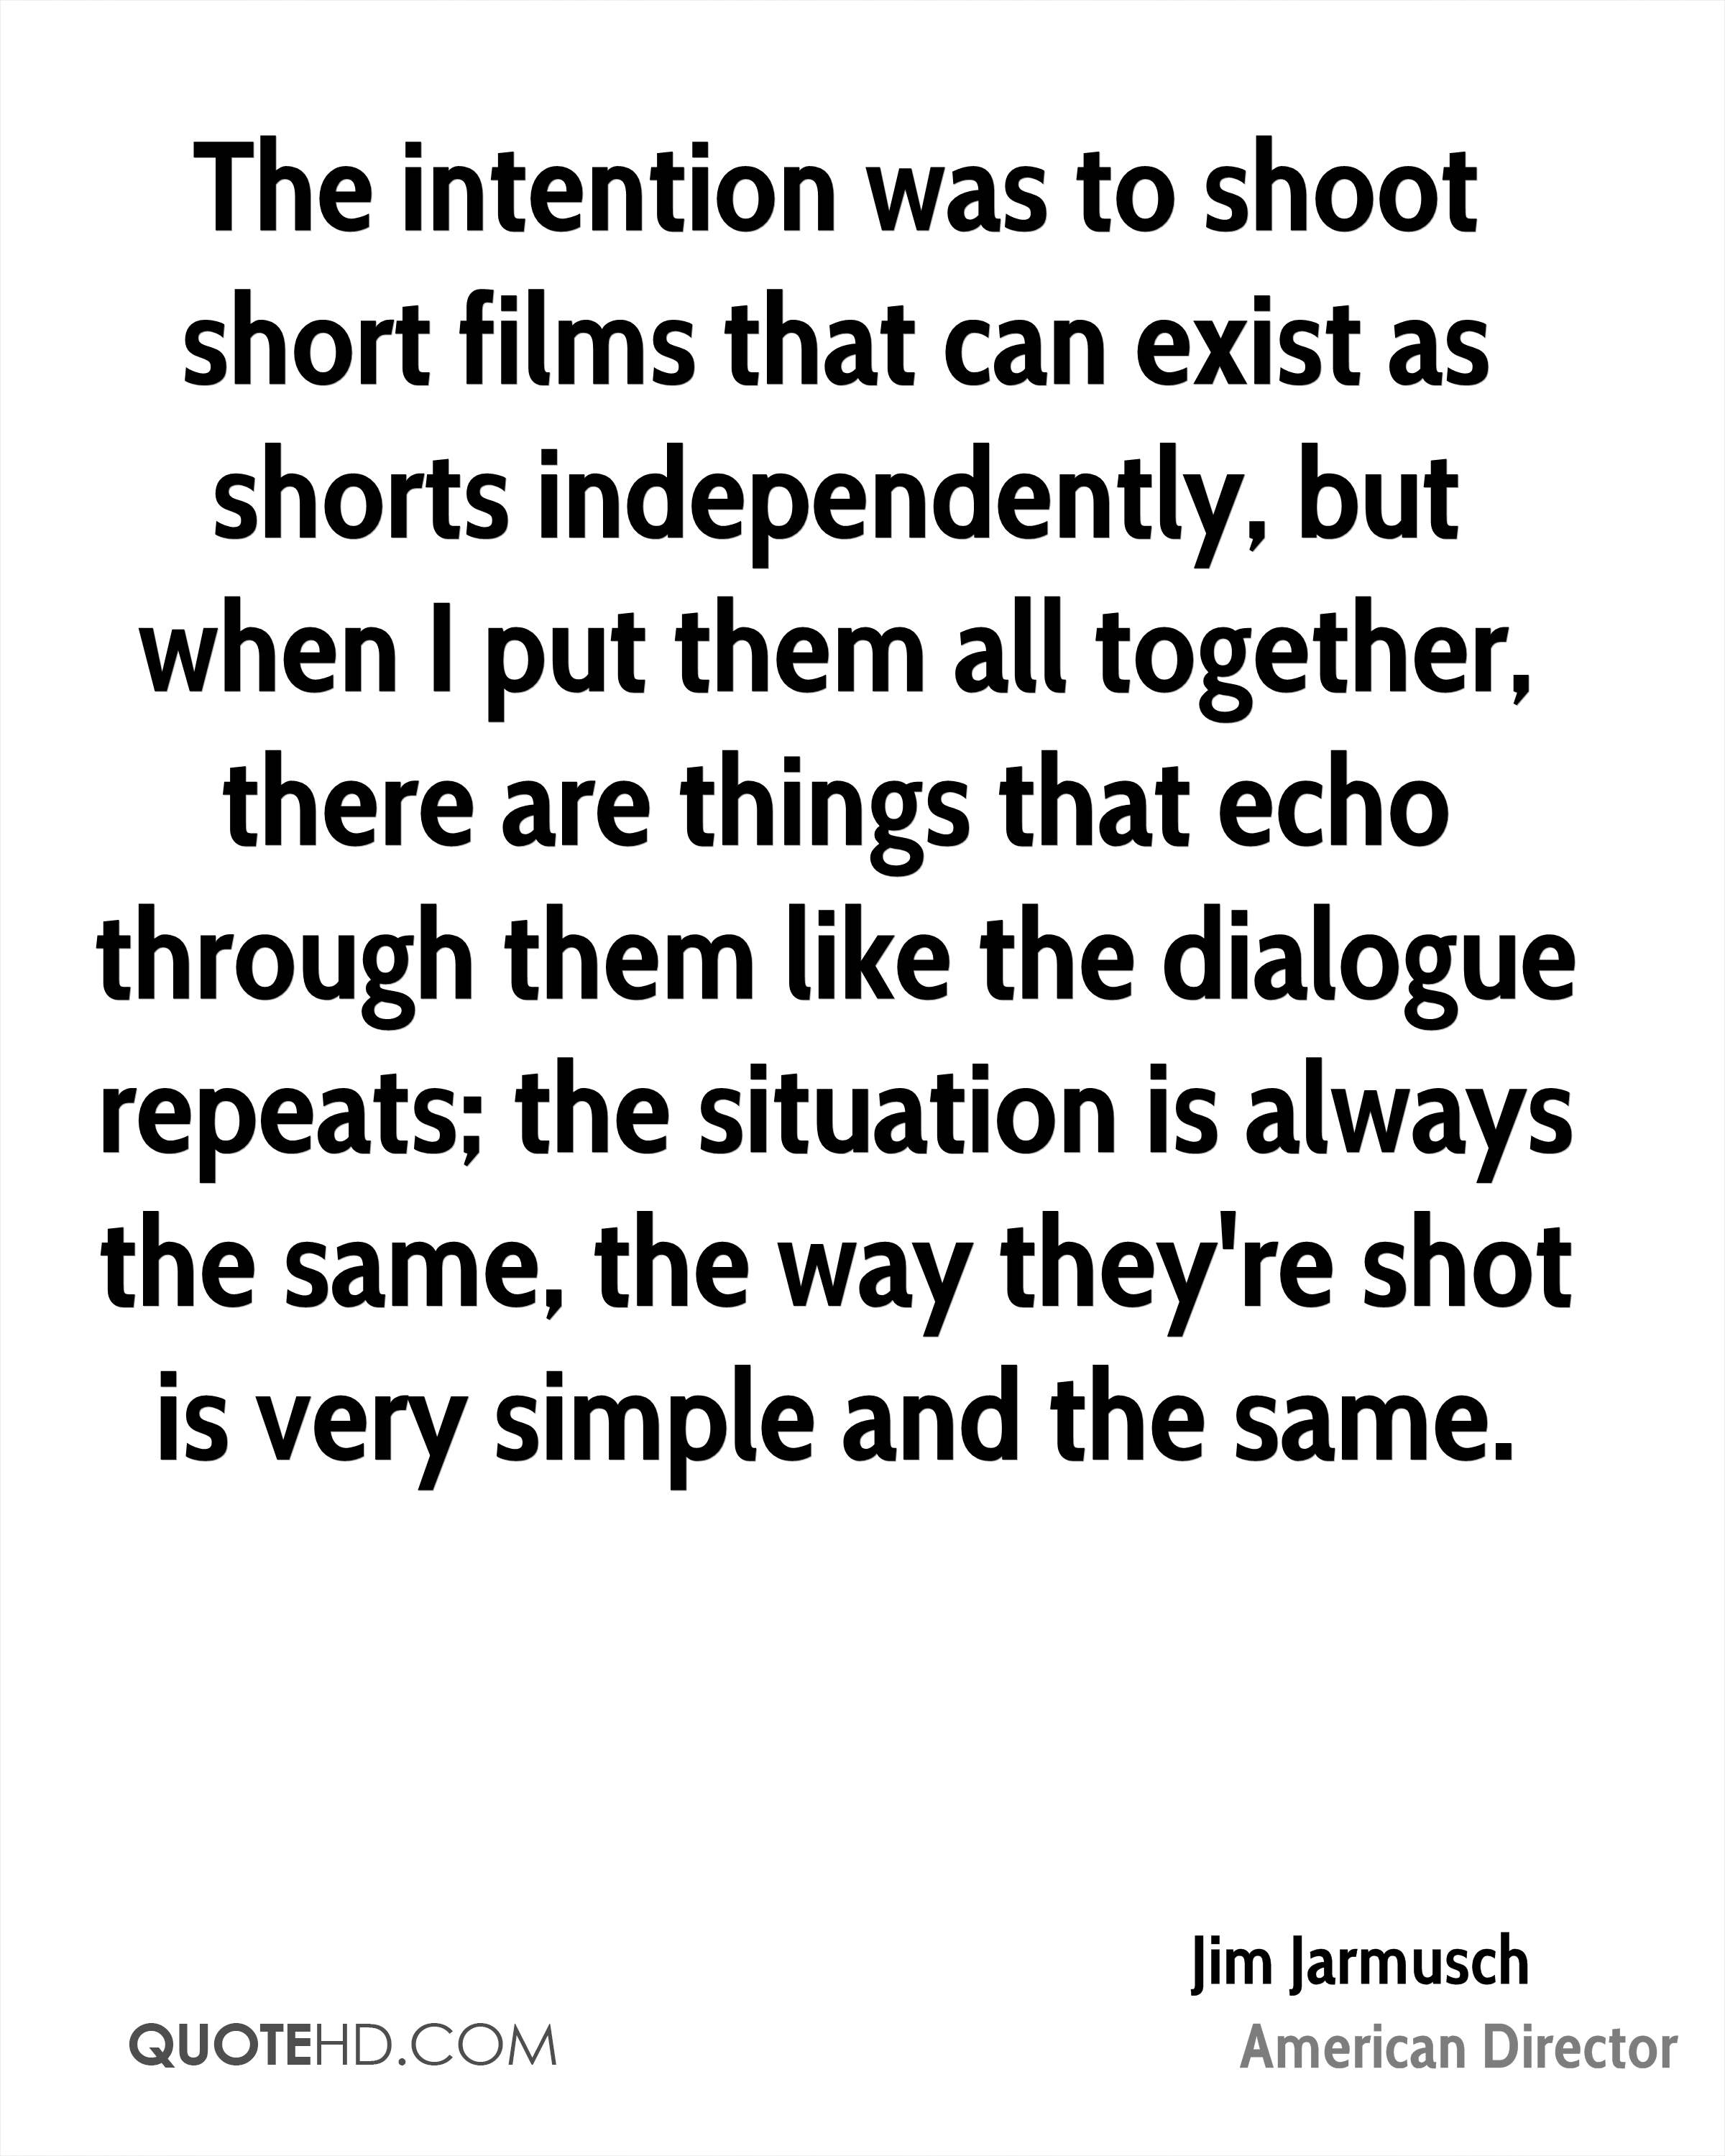 The intention was to shoot short films that can exist as shorts independently, but when I put them all together, there are things that echo through them like the dialogue repeats; the situation is always the same, the way they're shot is very simple and the same.